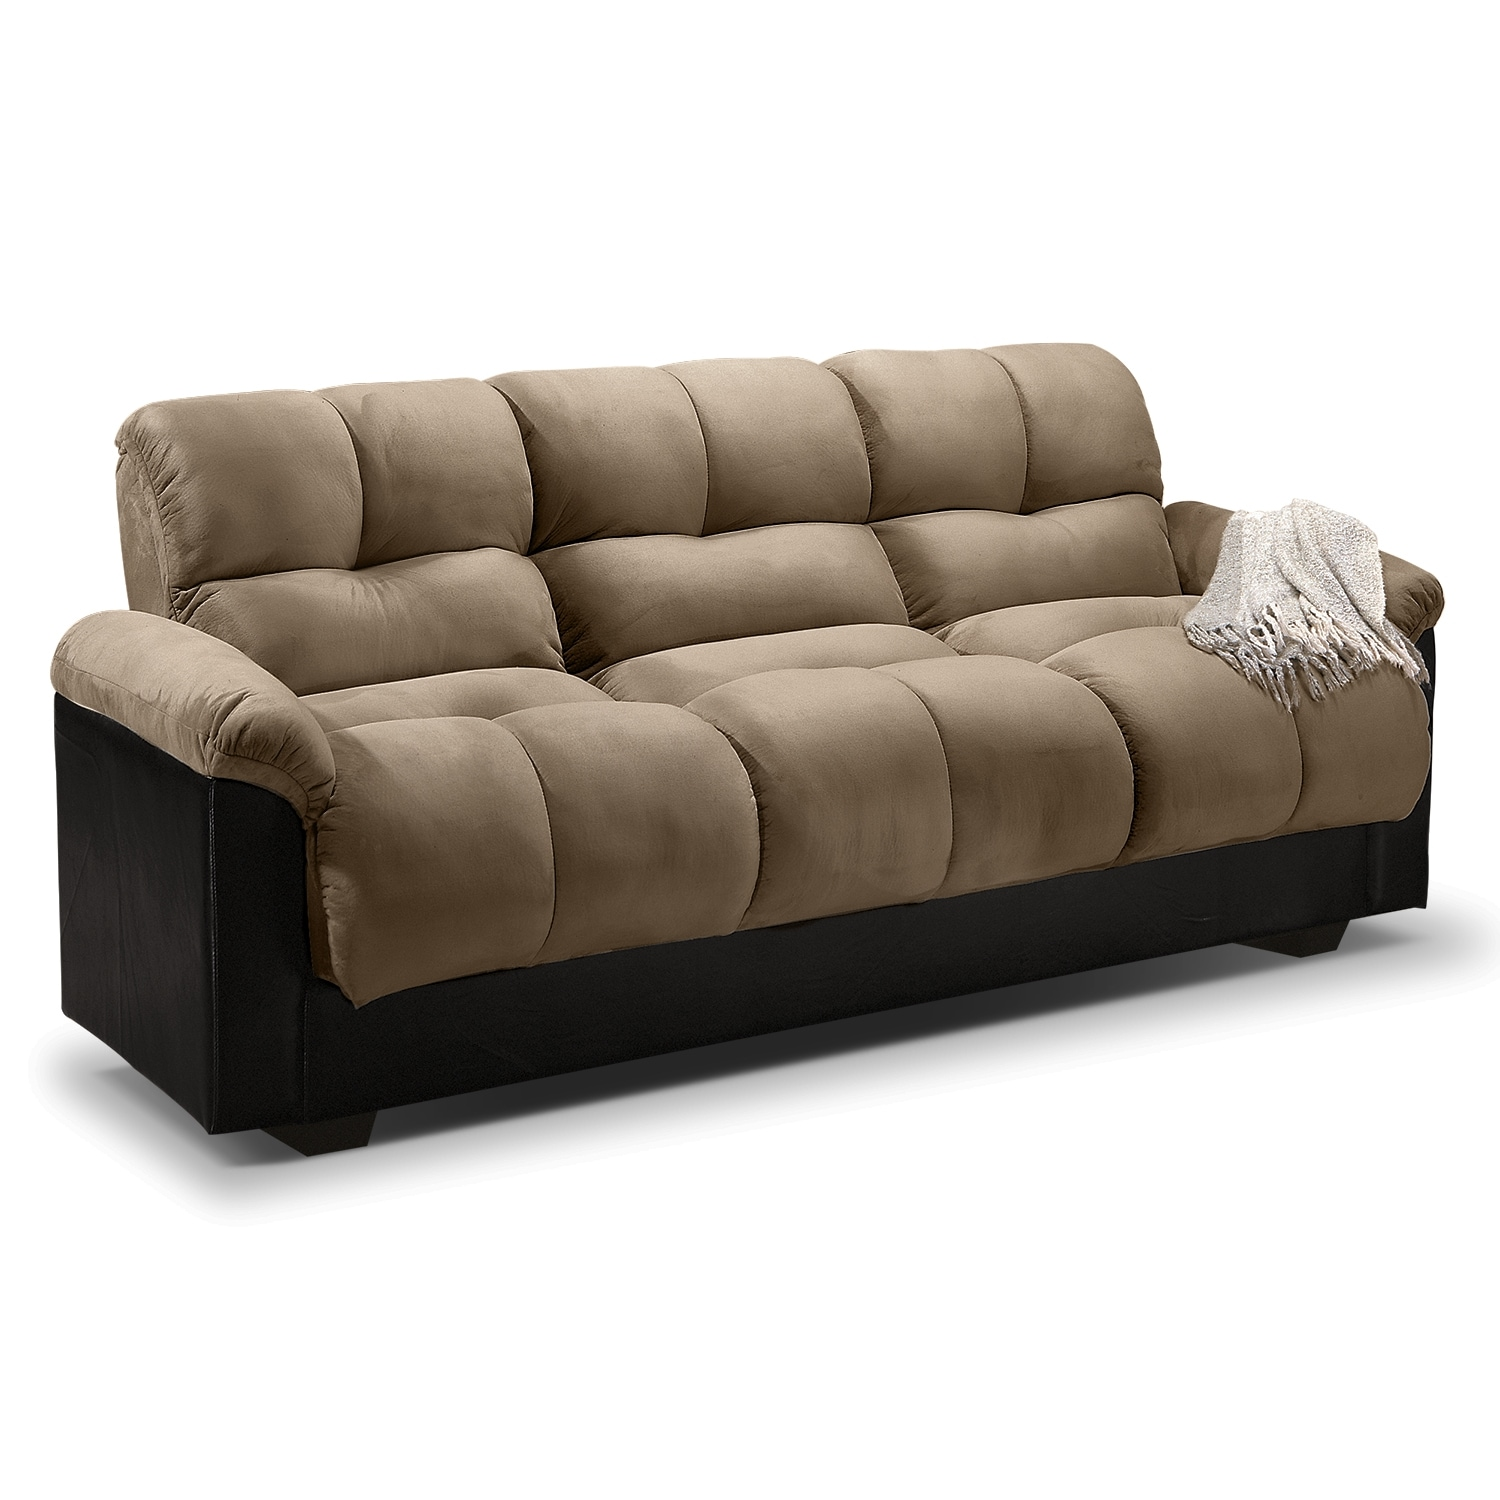 Crawford futon sofa bed with storage Sleeper sofa mattress